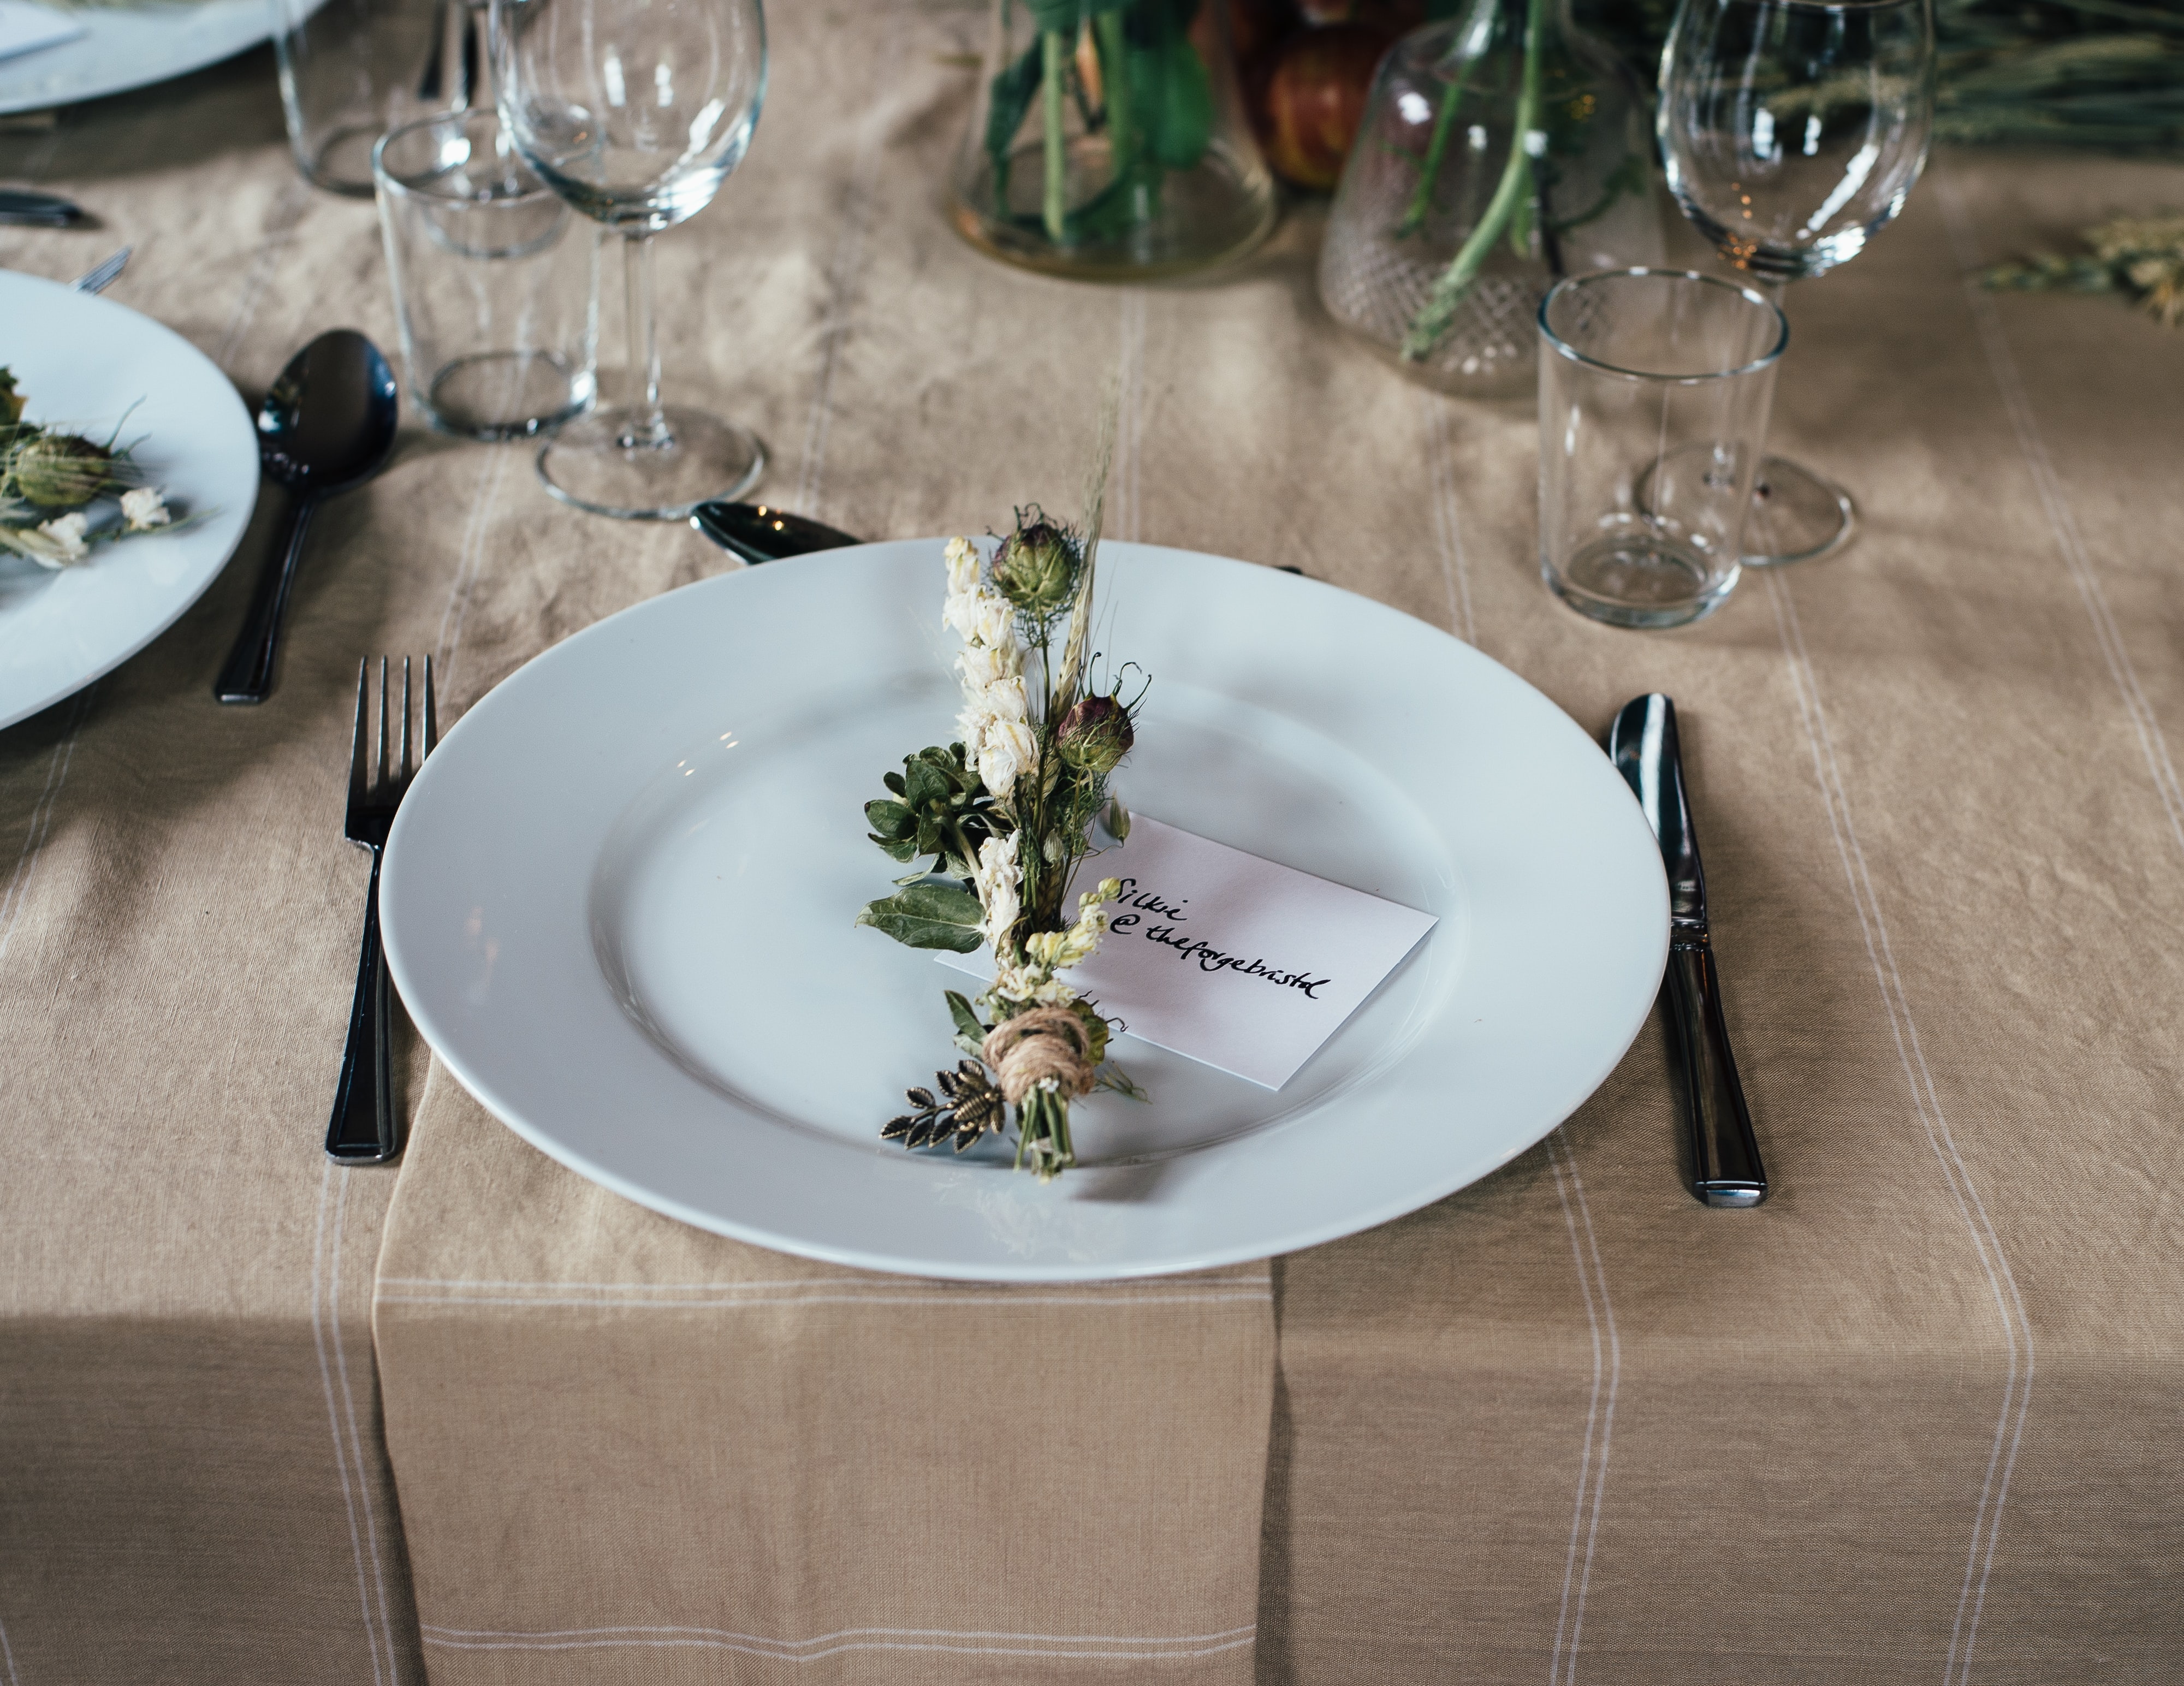 A bunch of flowers and a card on an empty white plate on a set table